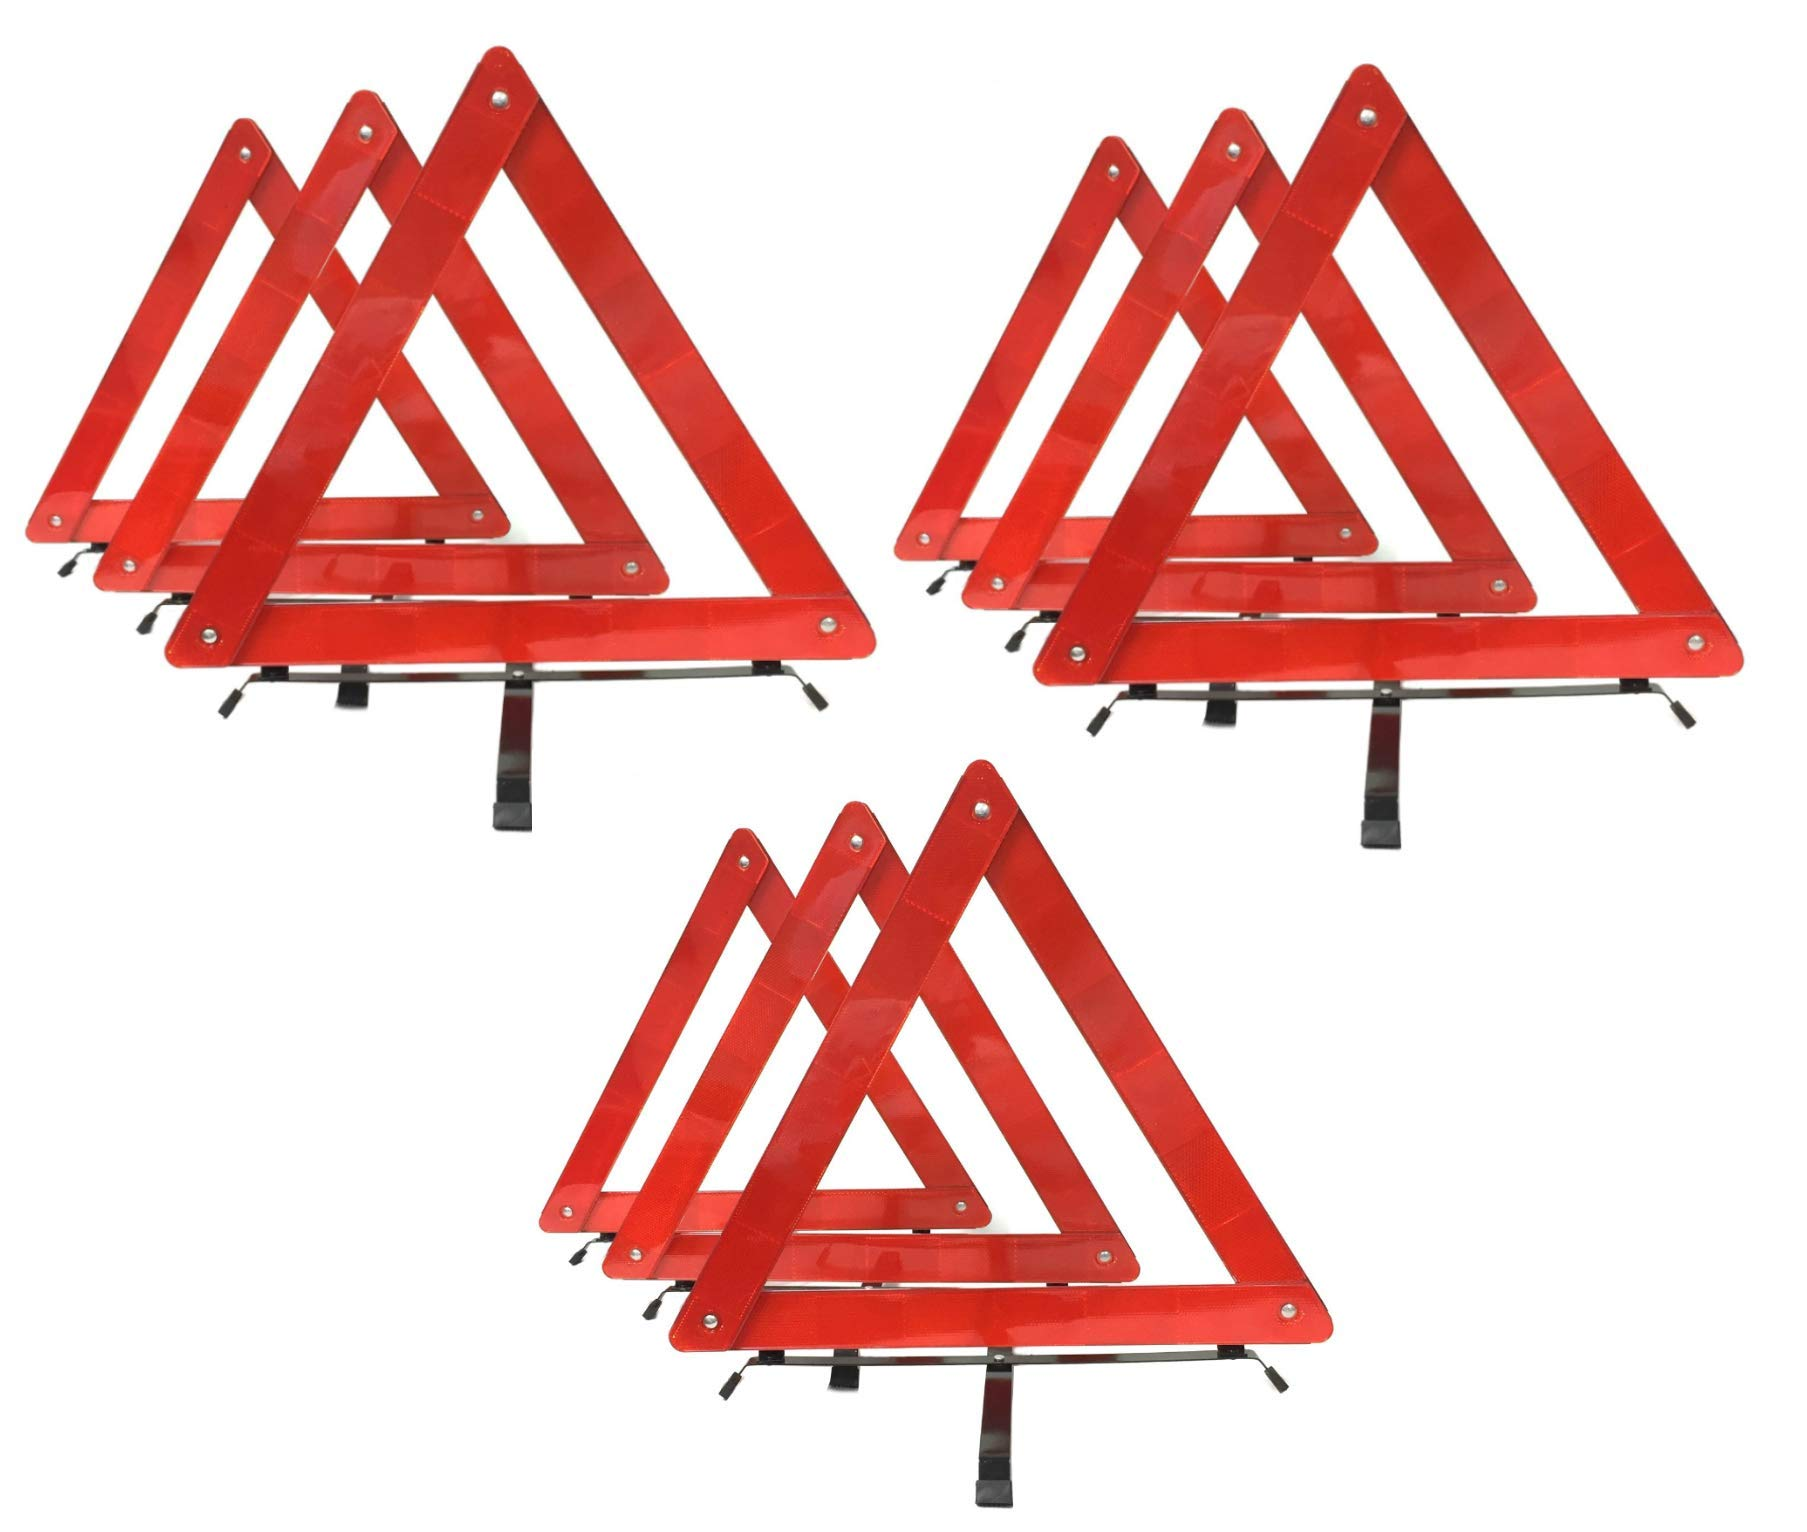 BRUFER 9-Pack Emergency Roadside Safety Triangle with Reinforced Cross Base and Carrying Case